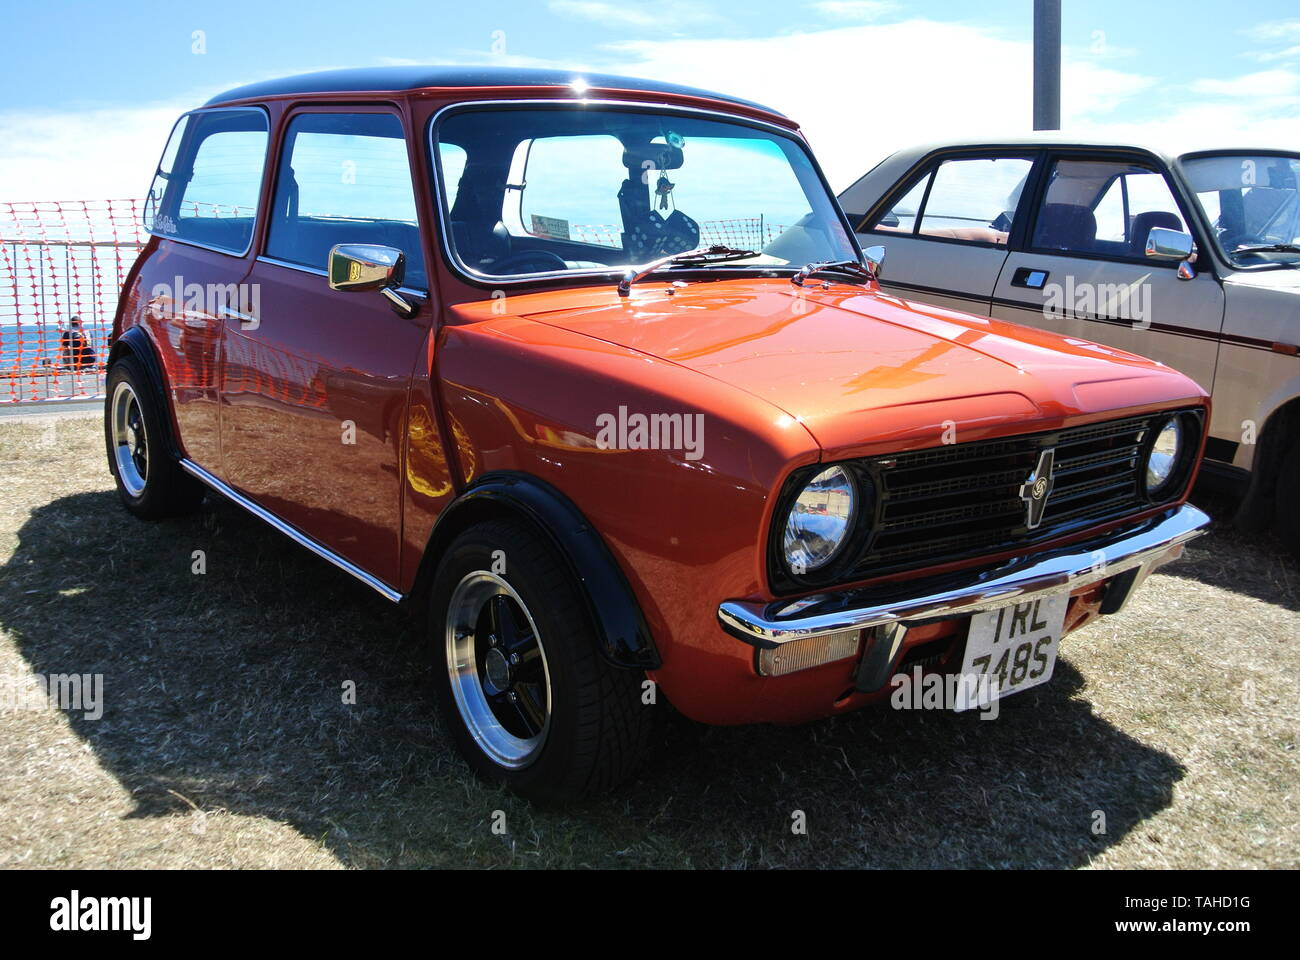 A 1978 British Leyland Mini parked up on display at the Riviera classic car show, Paignton, Devon, England. UK. Stock Photo